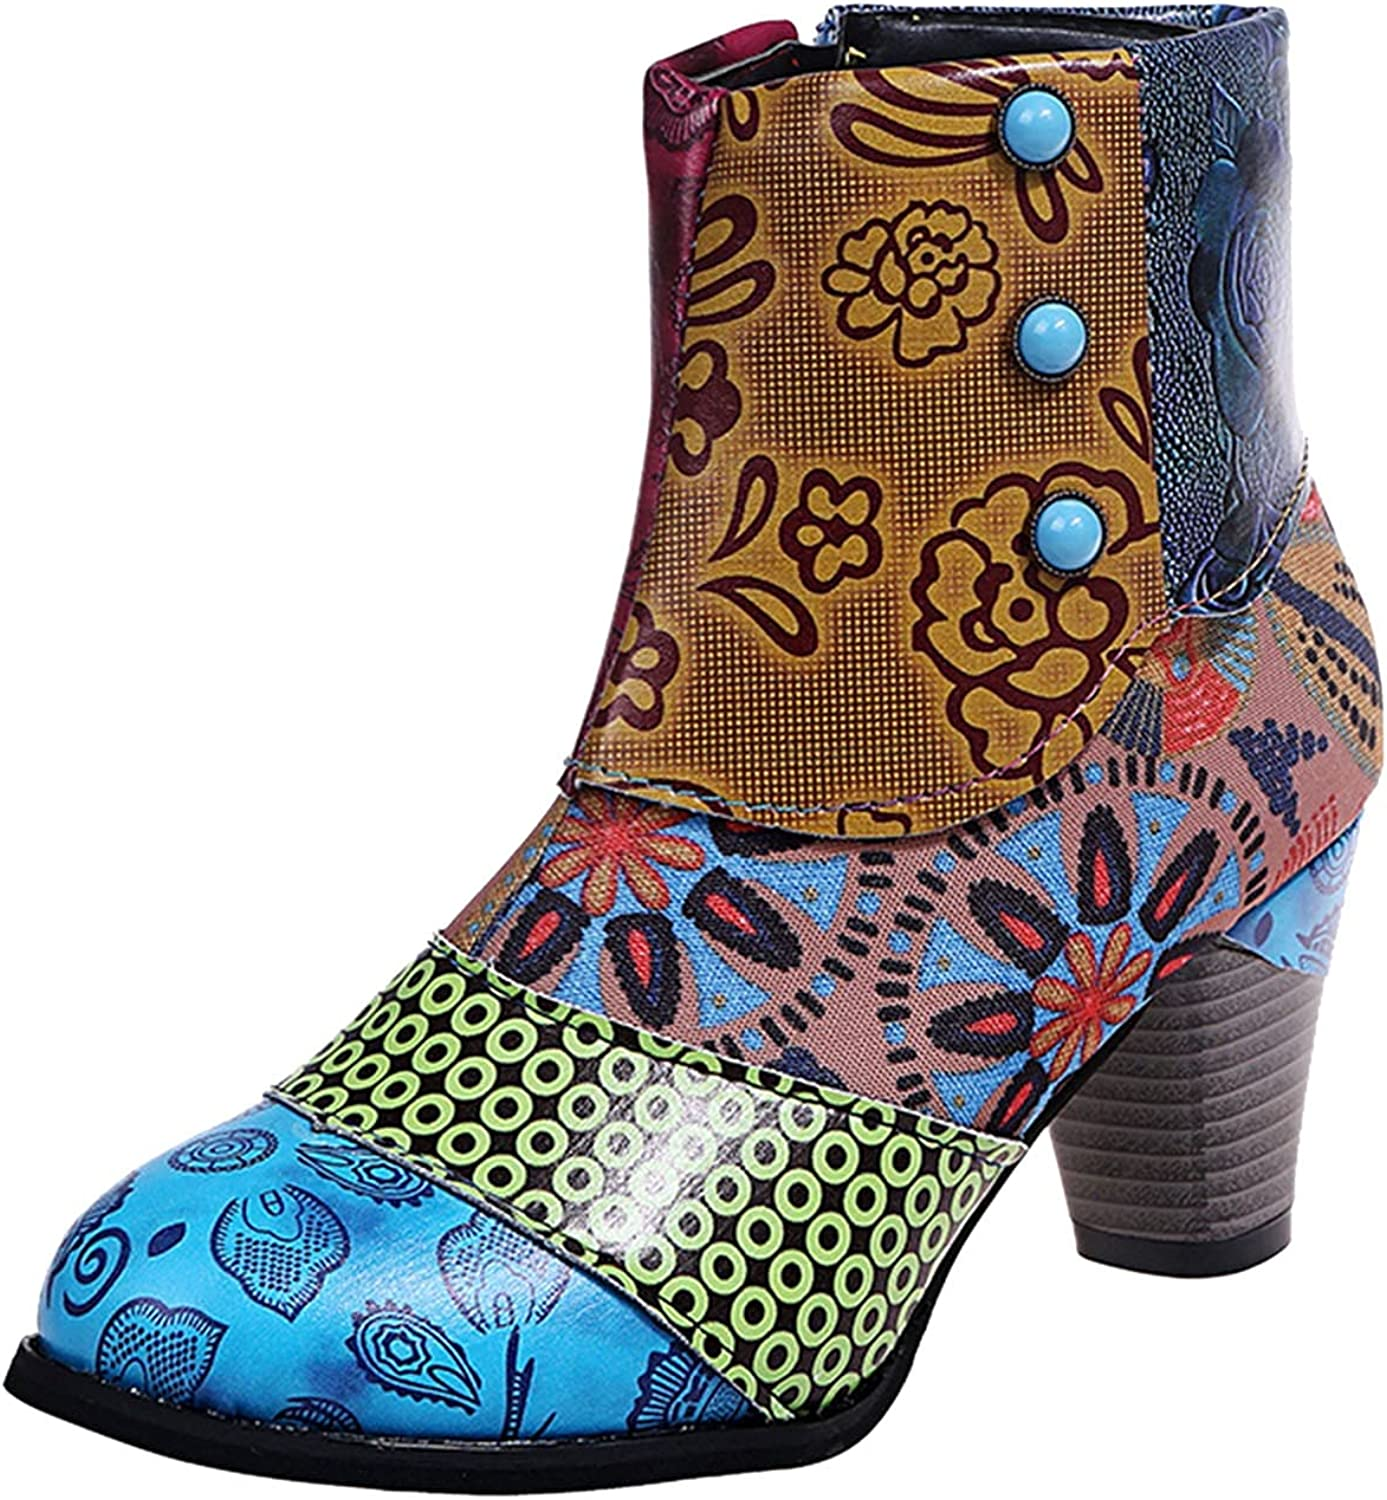 Cowgirl Boots for Women VintageMid Calf Round Toe Punk Knight Boots Chain Studded Knight Retro Cowboy Boots for WomenWomen's Sunflower Printed Boots